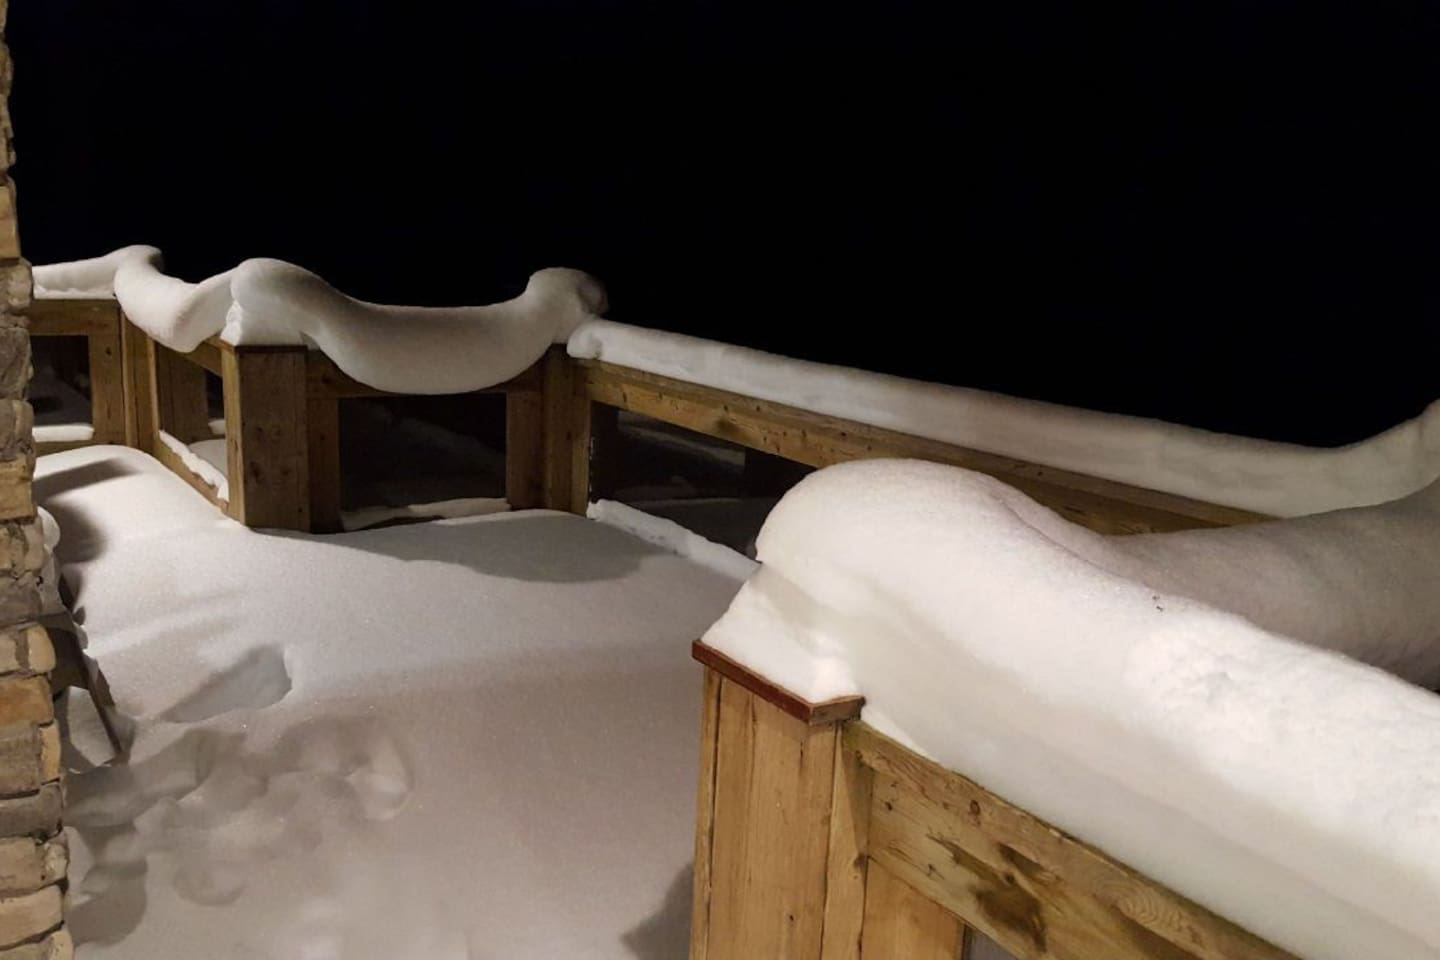 Heavy snowfall on front porch